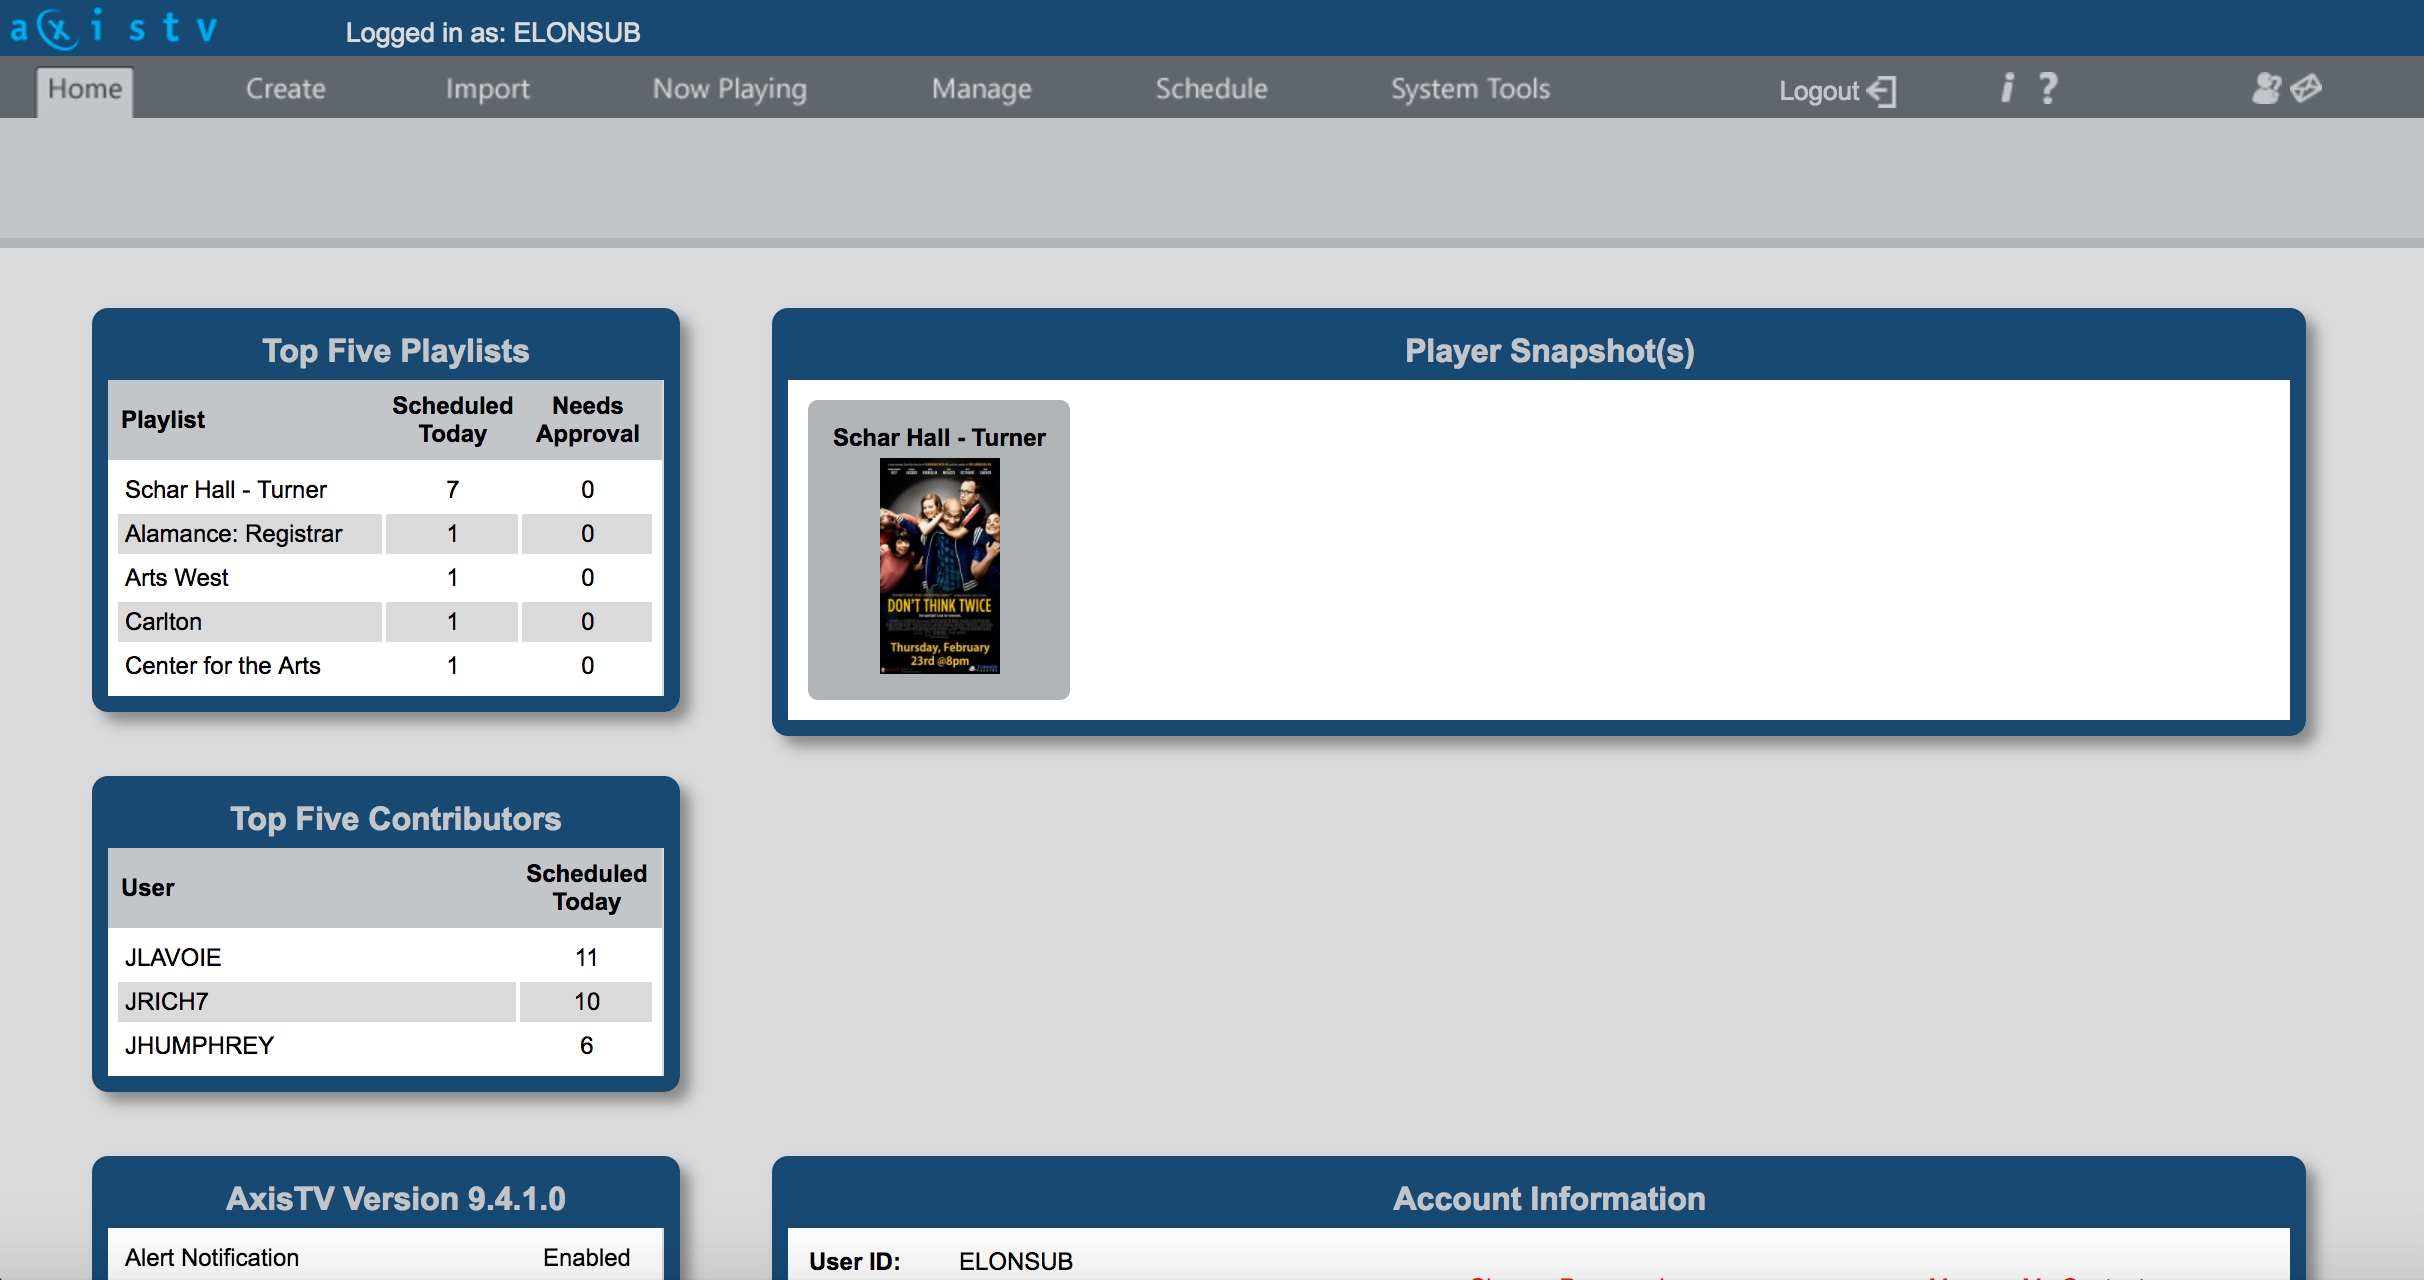 A picture of the visix application homepage.